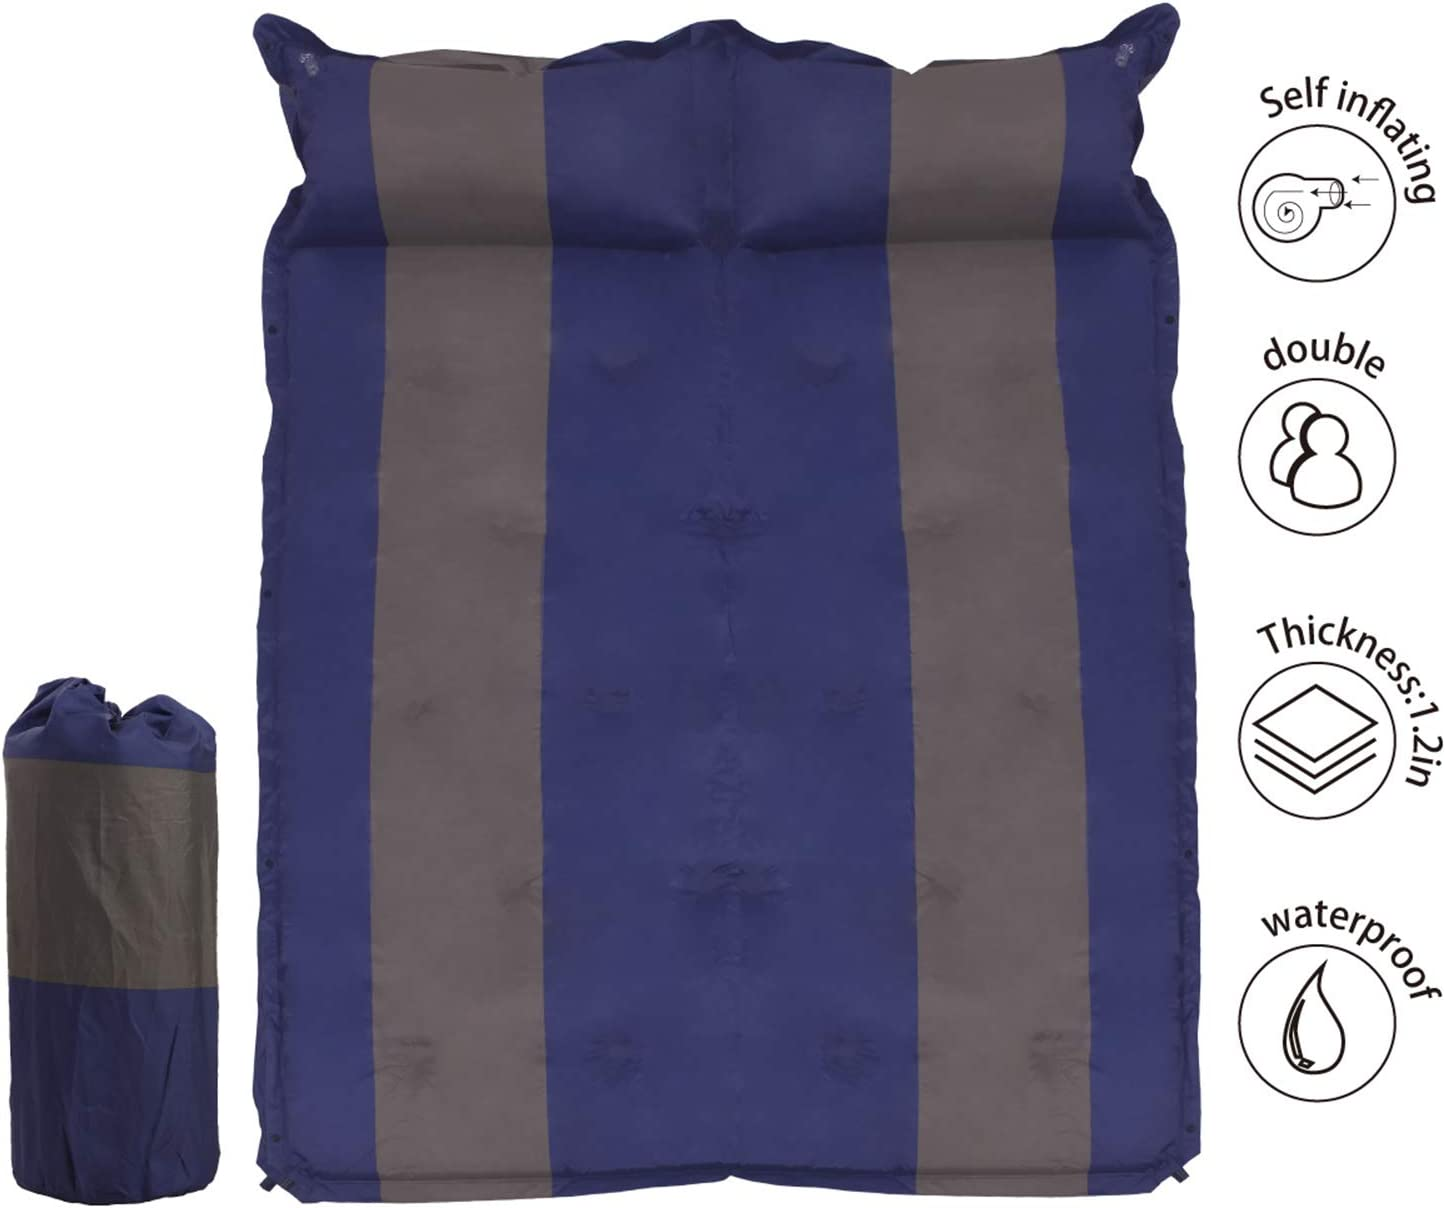 WILD FUN 2 Person Double Self-Inflating Sleeping Pad